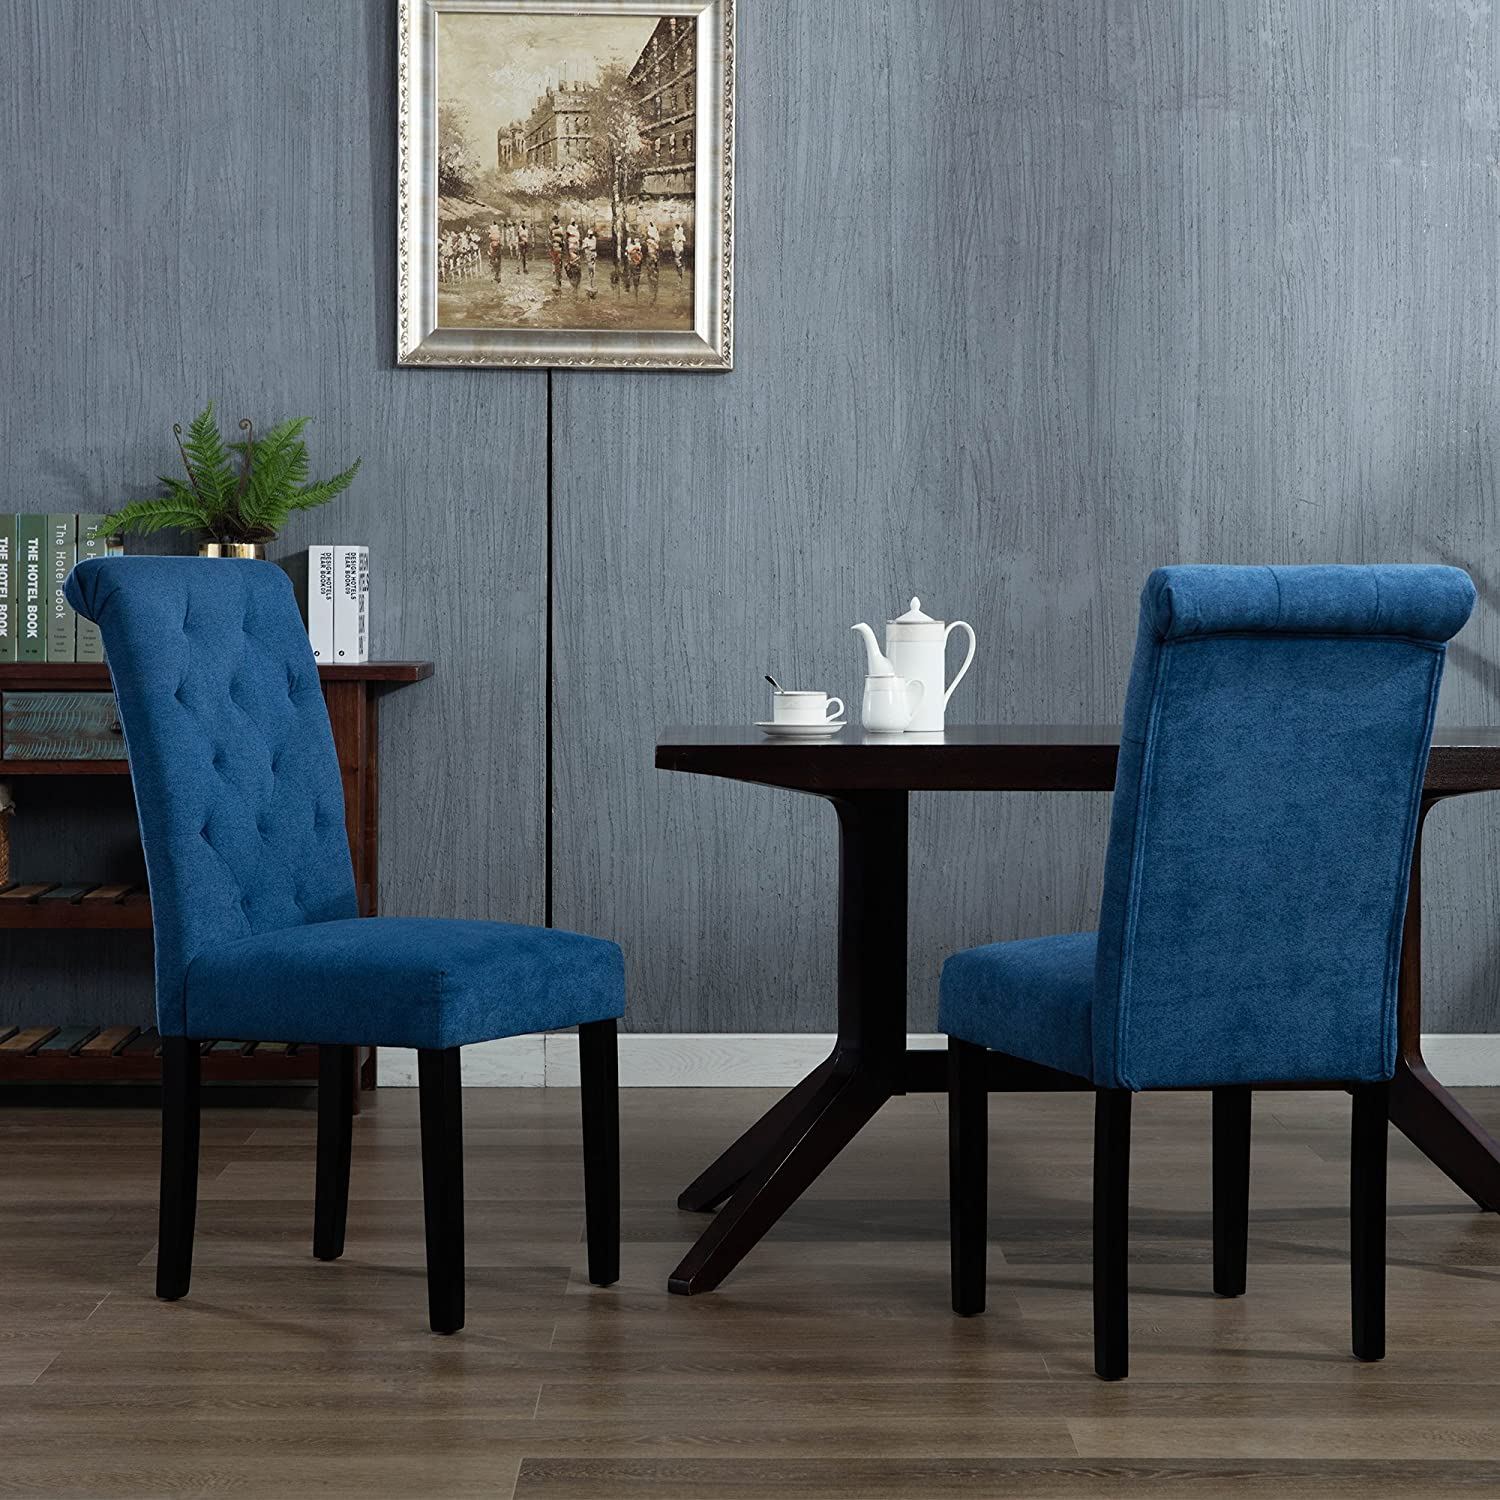 Amazon com dagonhil stylish parsons dining room chairs set of 2with solid wood legs blue chairs